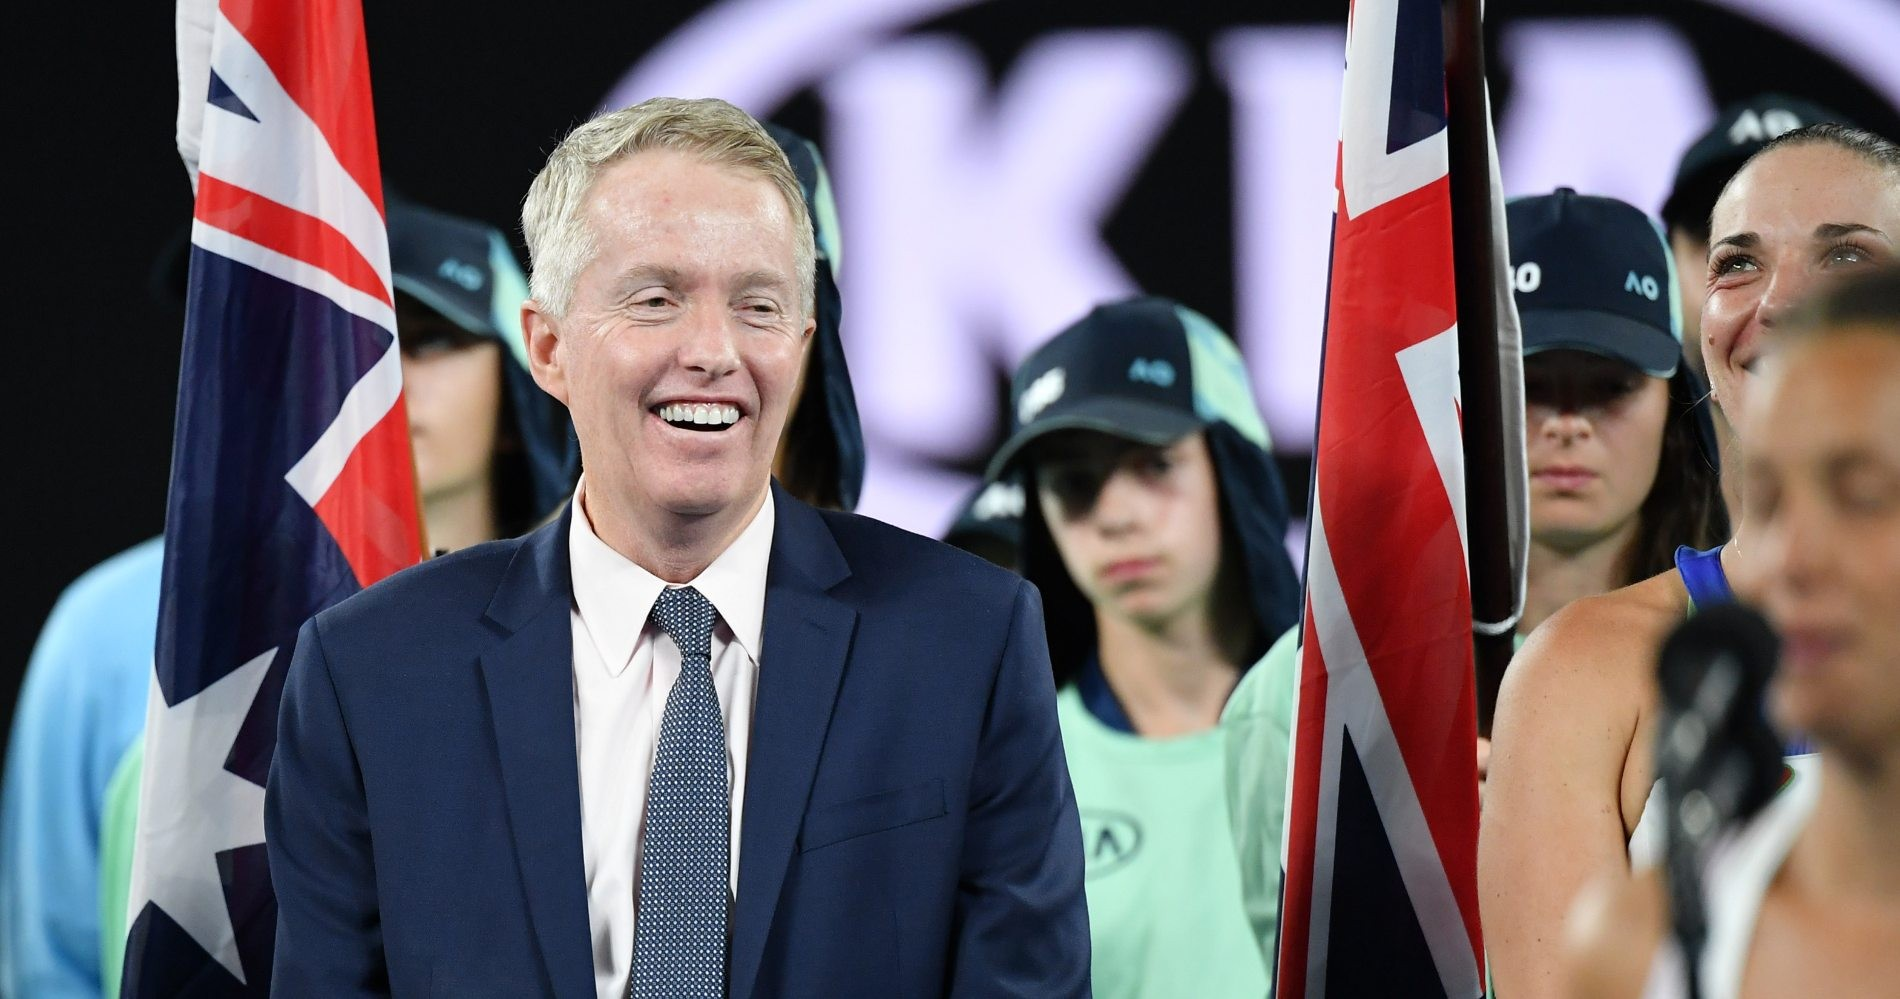 Craig Tiley is the CEO of Tennis AUstralia and tournament director aof the Australian Open since 2013